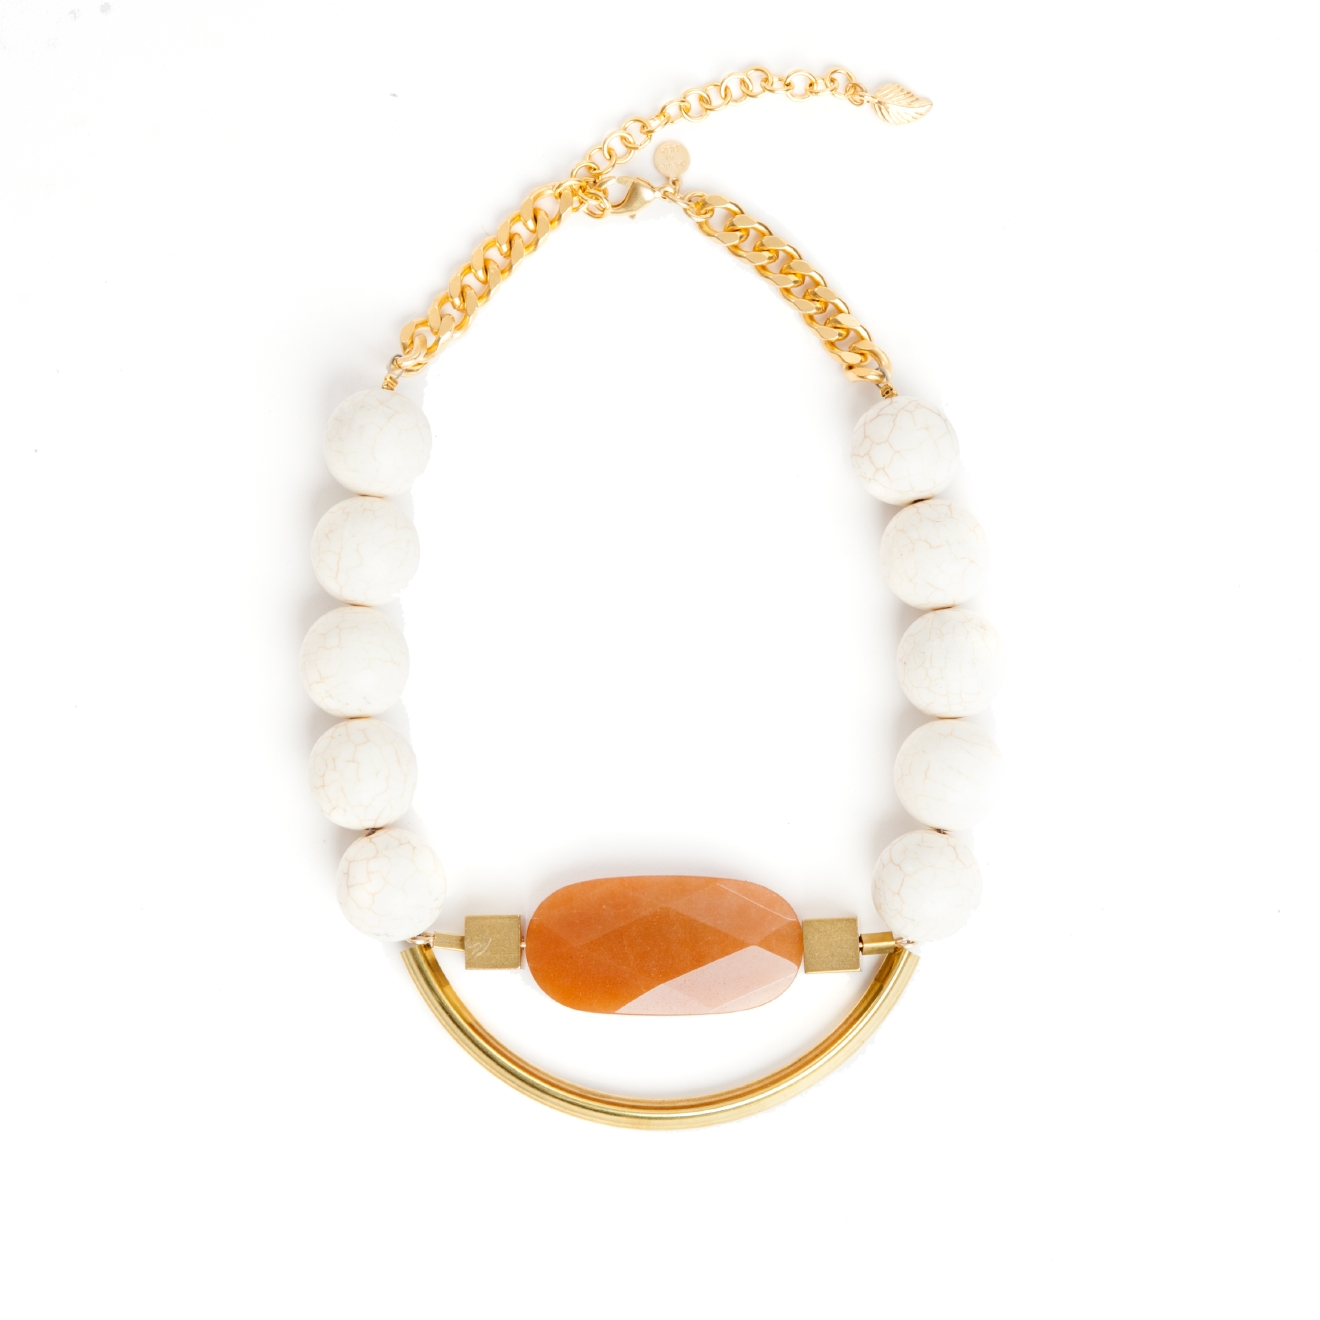 David Aubrey Lola Necklace, $82 (Tuckernuck)